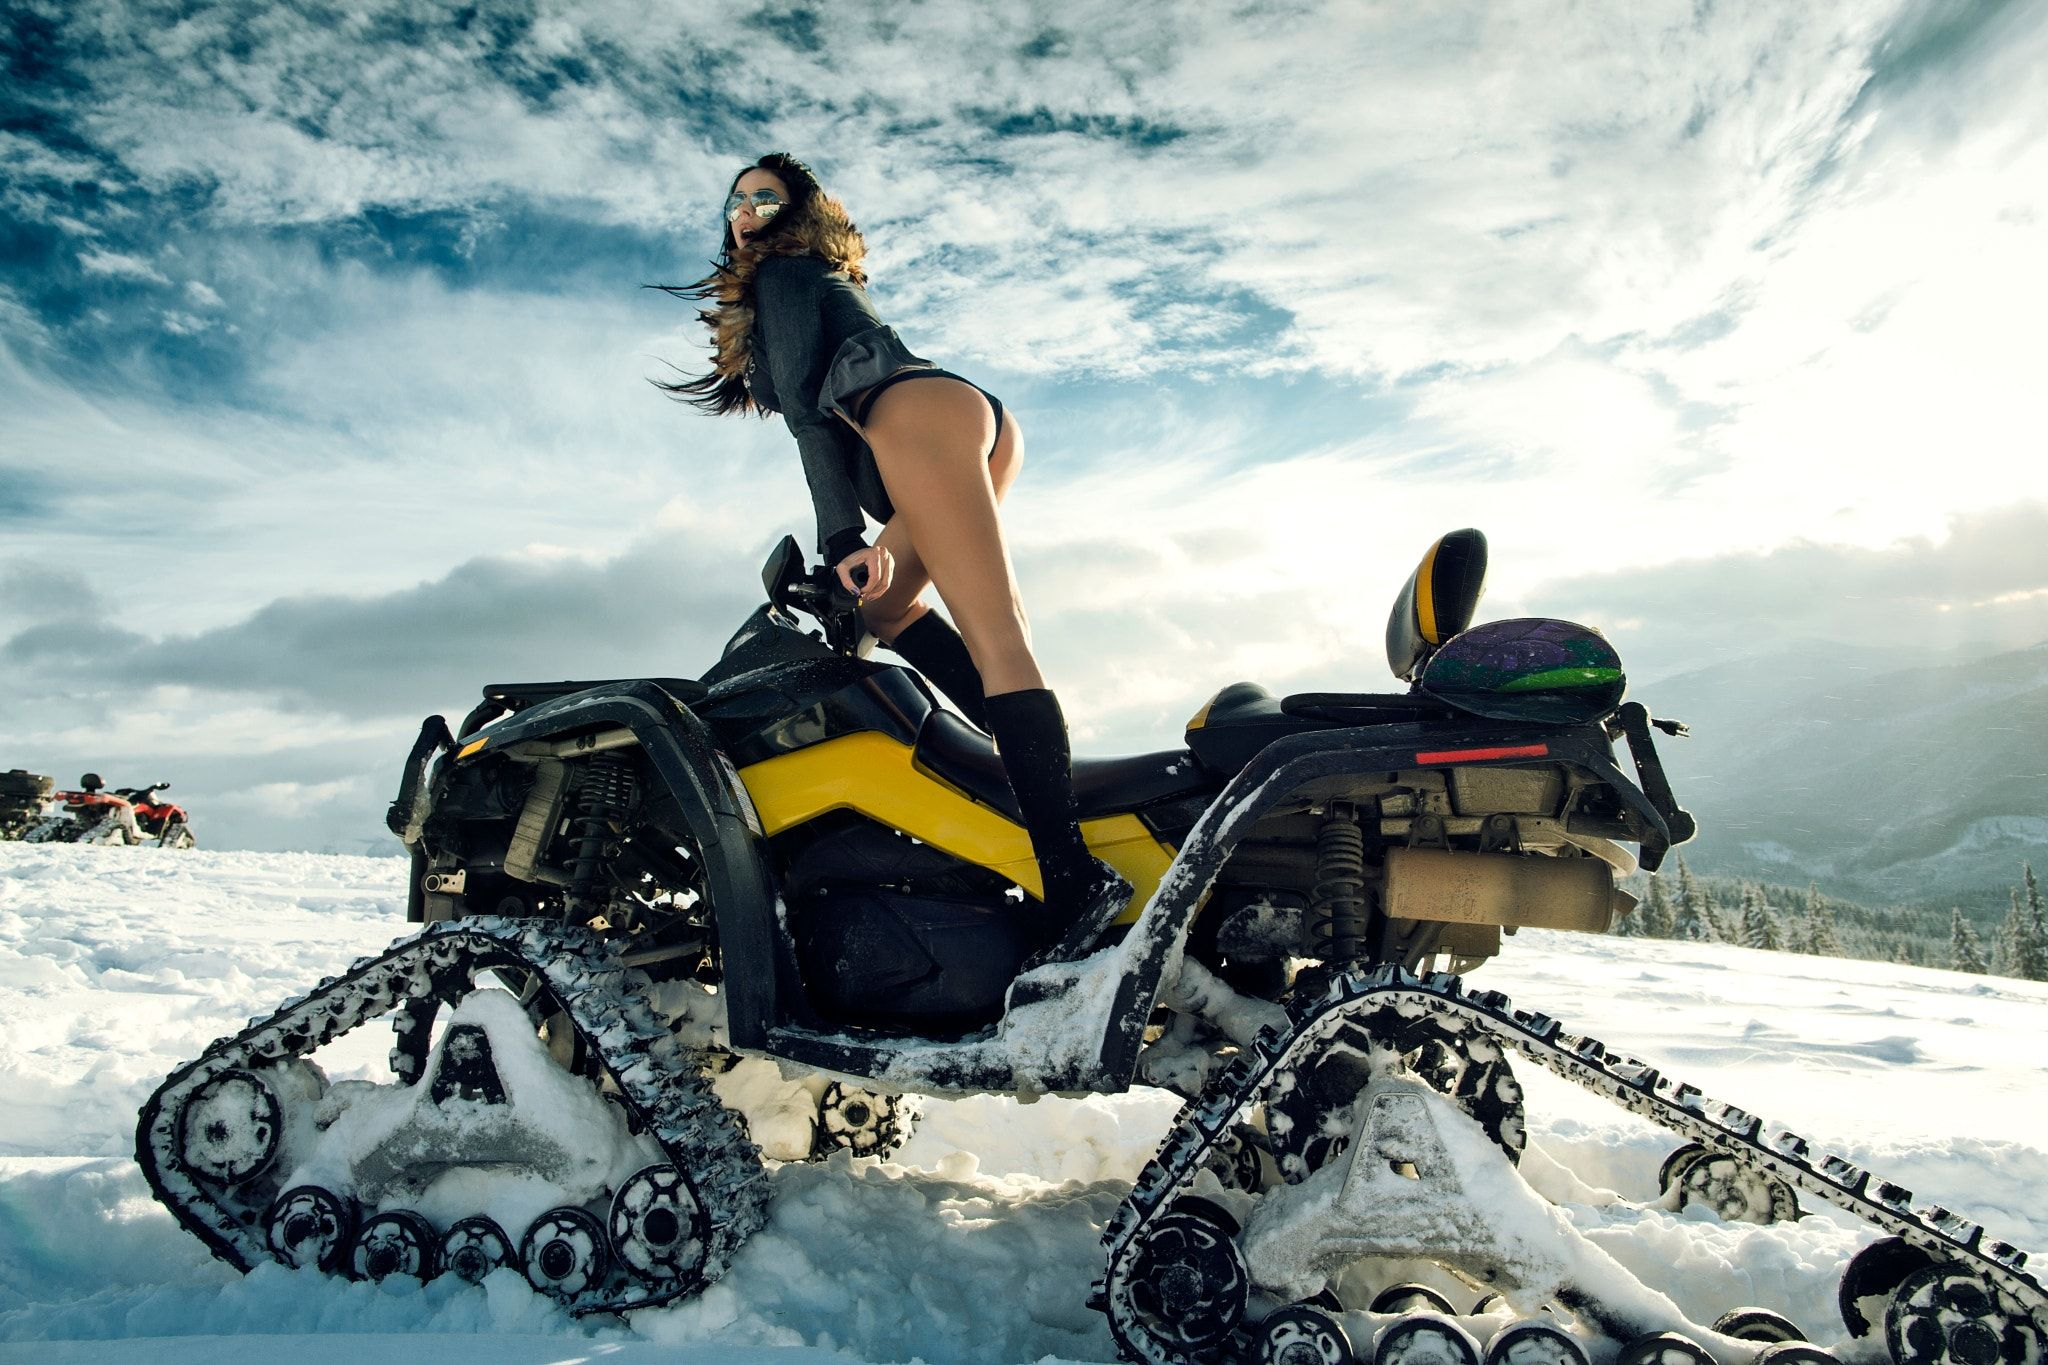 Yamaha Blackfriday Snowmobile